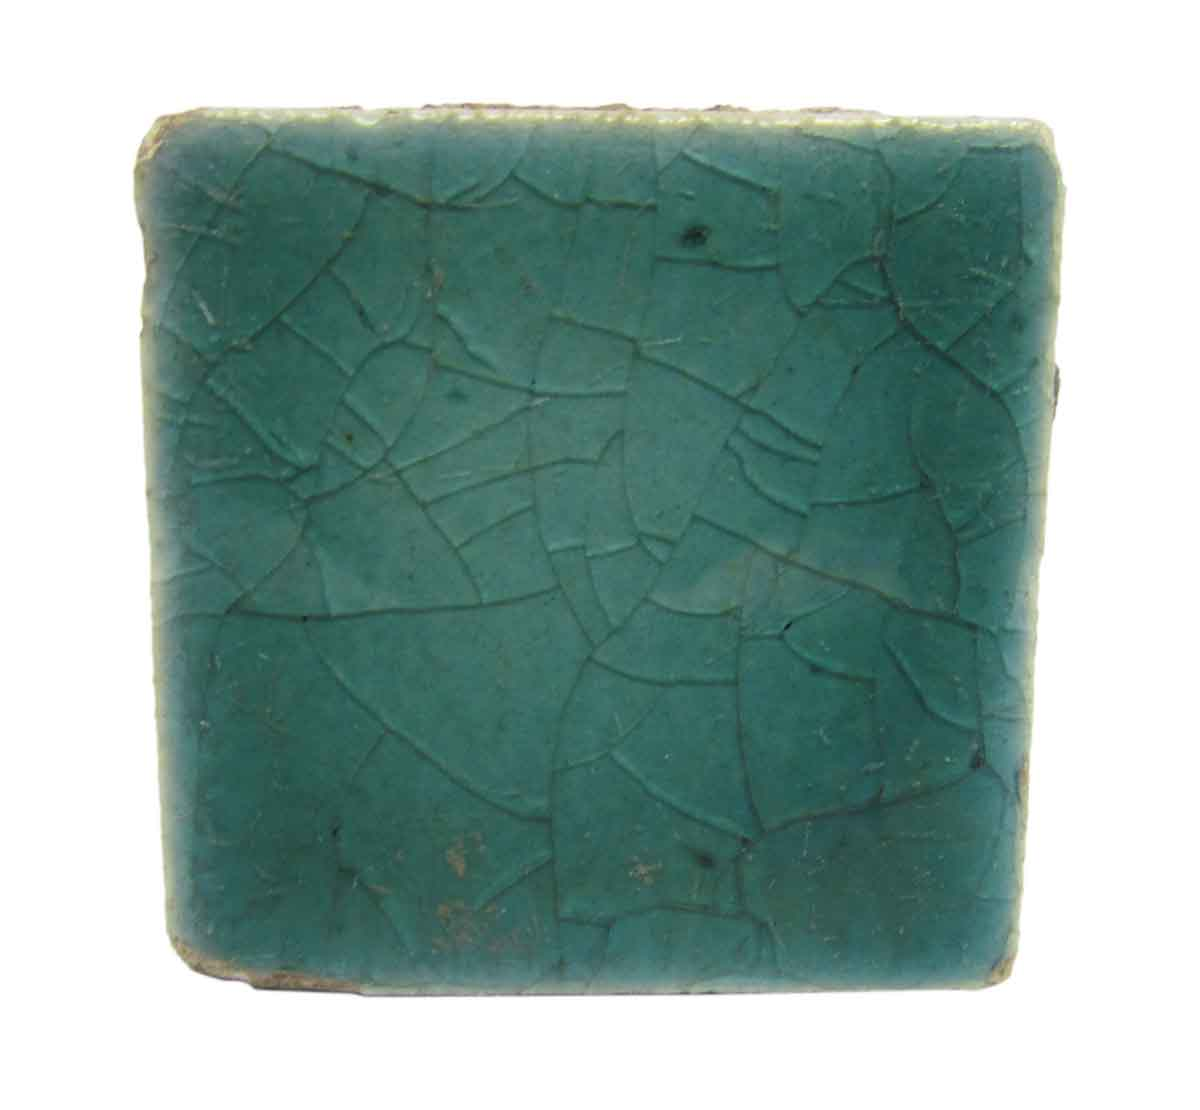 Small Square Crackled Teal Tiles Olde Good Things